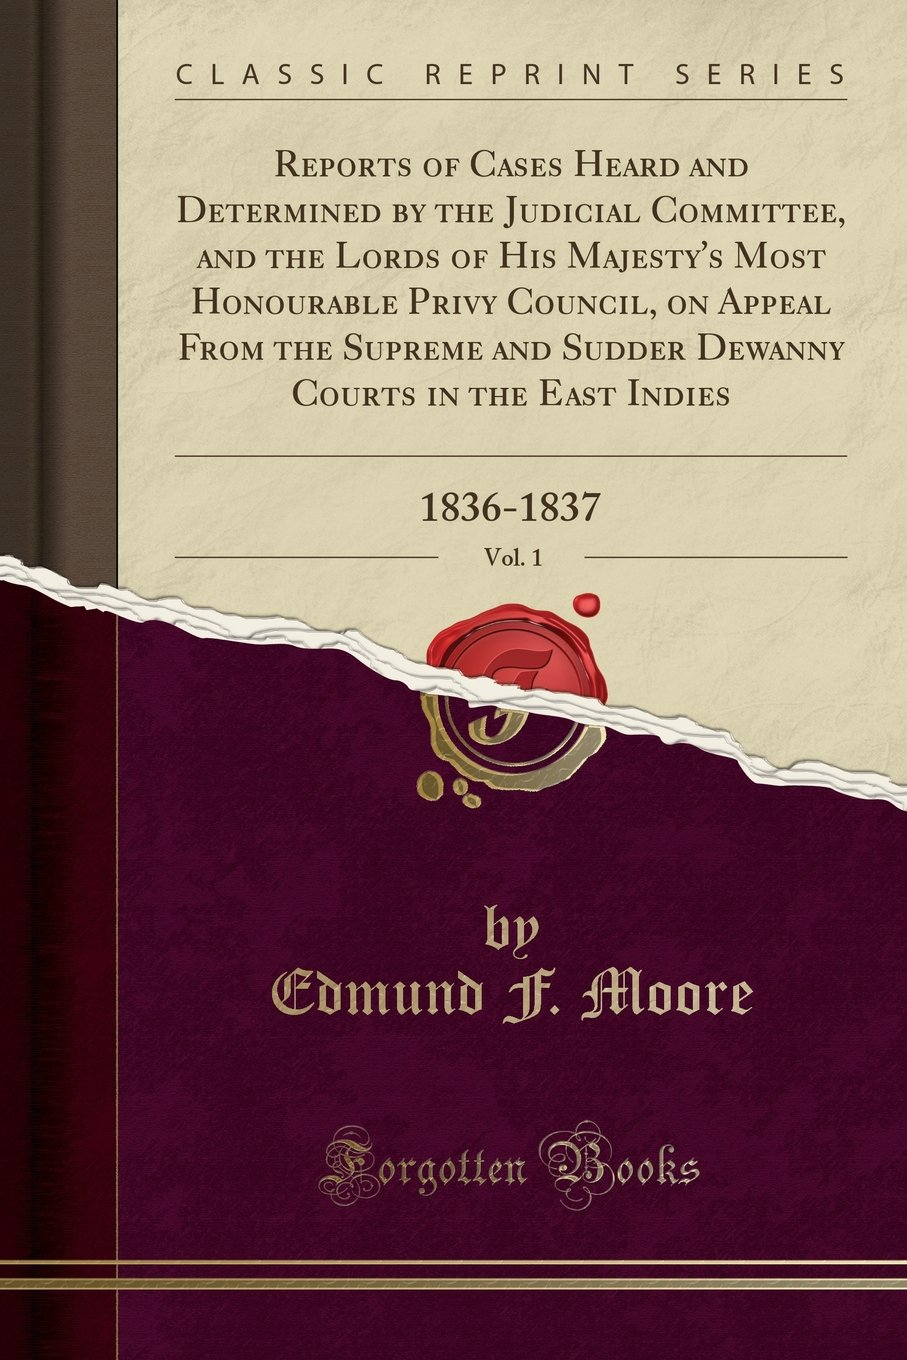 Reports of Cases Heard and Determined by the Judicial Committee, and the Lords of His Majesty's Most Honourable Privy Council, on Appeal From the ... Indies, Vol. 1: 1836-1837 (Classic Reprint) ebook